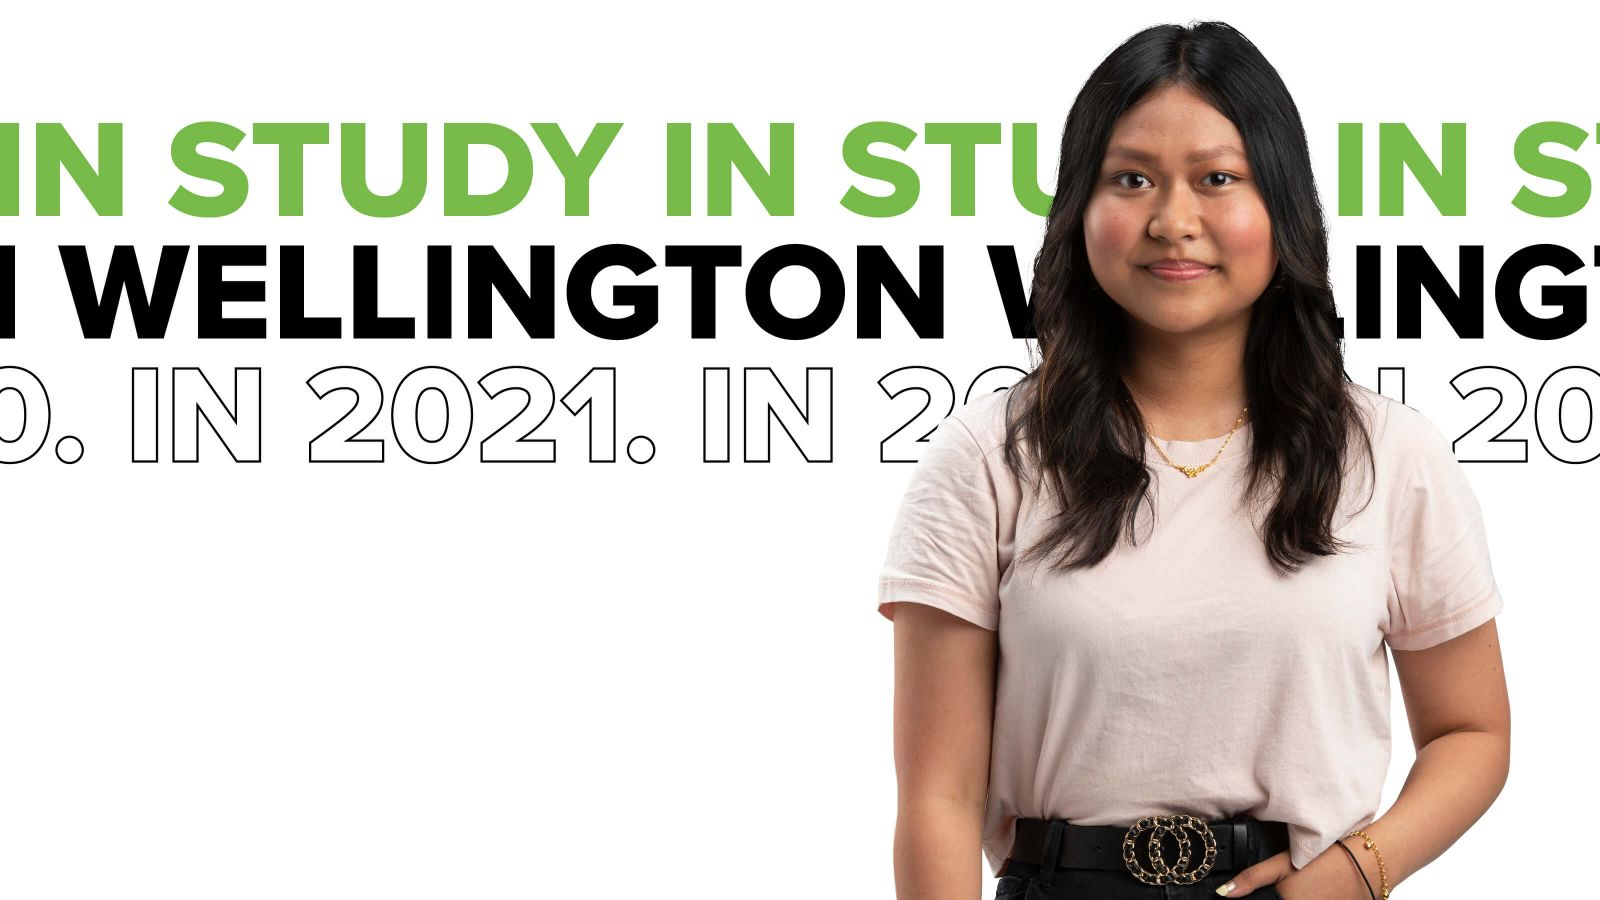 Apply now to study in 2021